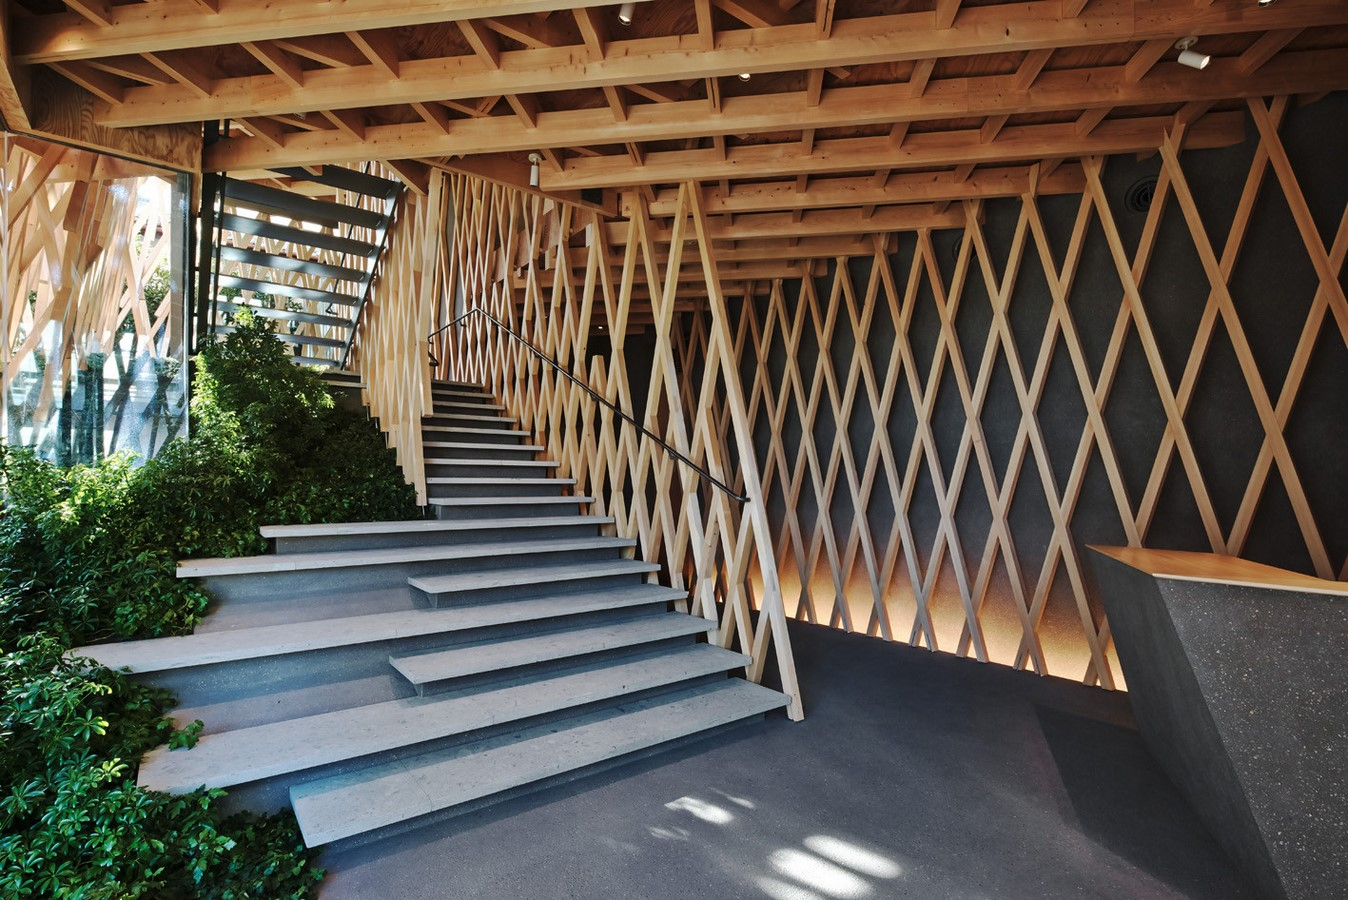 10 Examples of Wood used in Modern Architecture - Sheet19